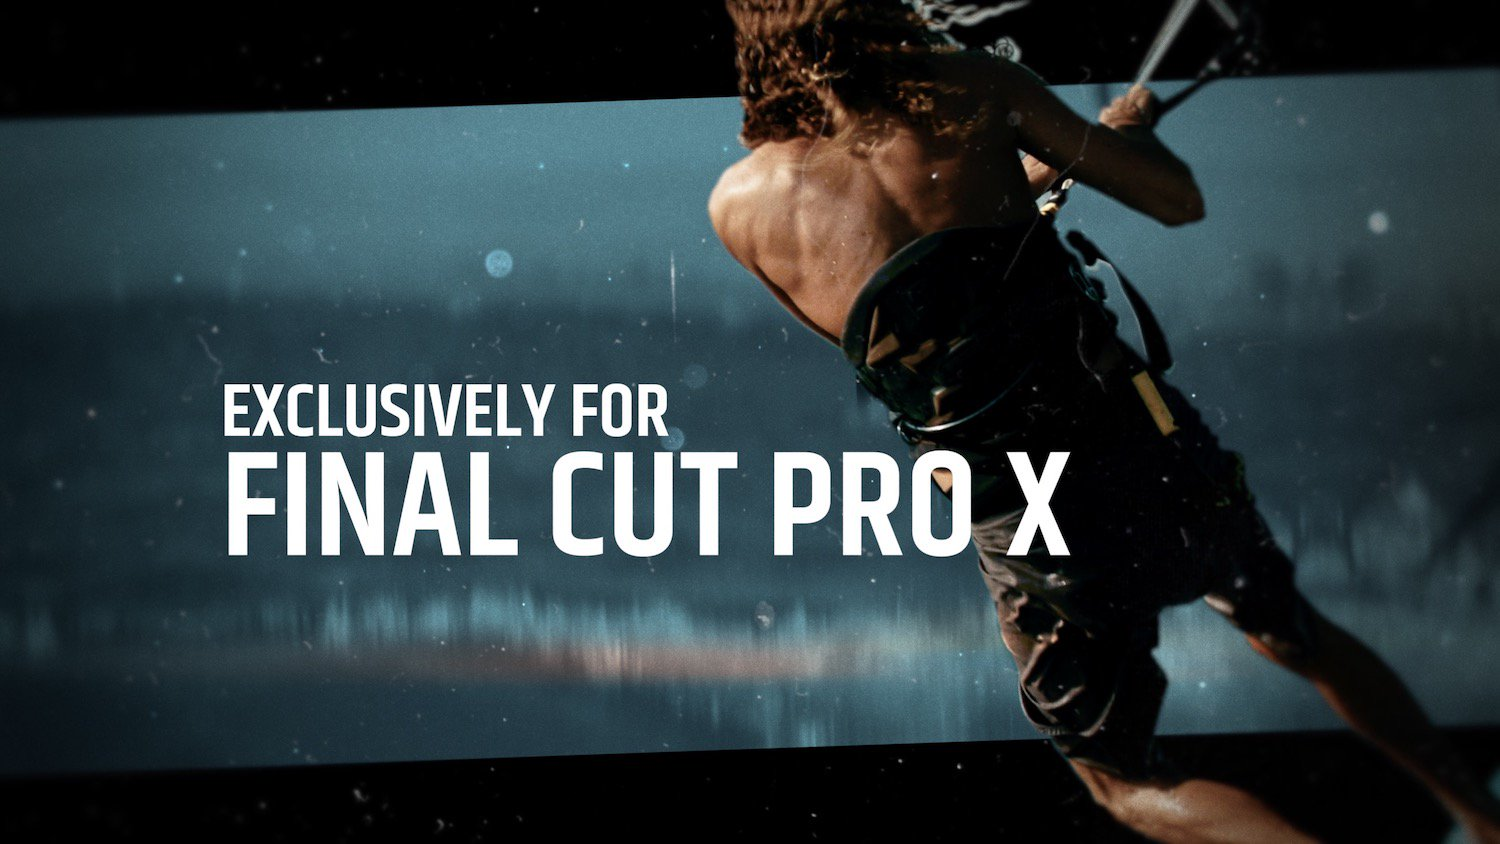 mFreezeFrame Action became one of our best selling plugin. Thank you everyone for supporting what we do! ❤️ FCPX power is strong with us 😎   #FCPX #FinalCutProX #FinalCutPro #MotionGraphics  #VideoEditing #VideoProduction #Video #Editing #YouTube #VLOG #Production #Motion https://t.co/CYqxFZspXx